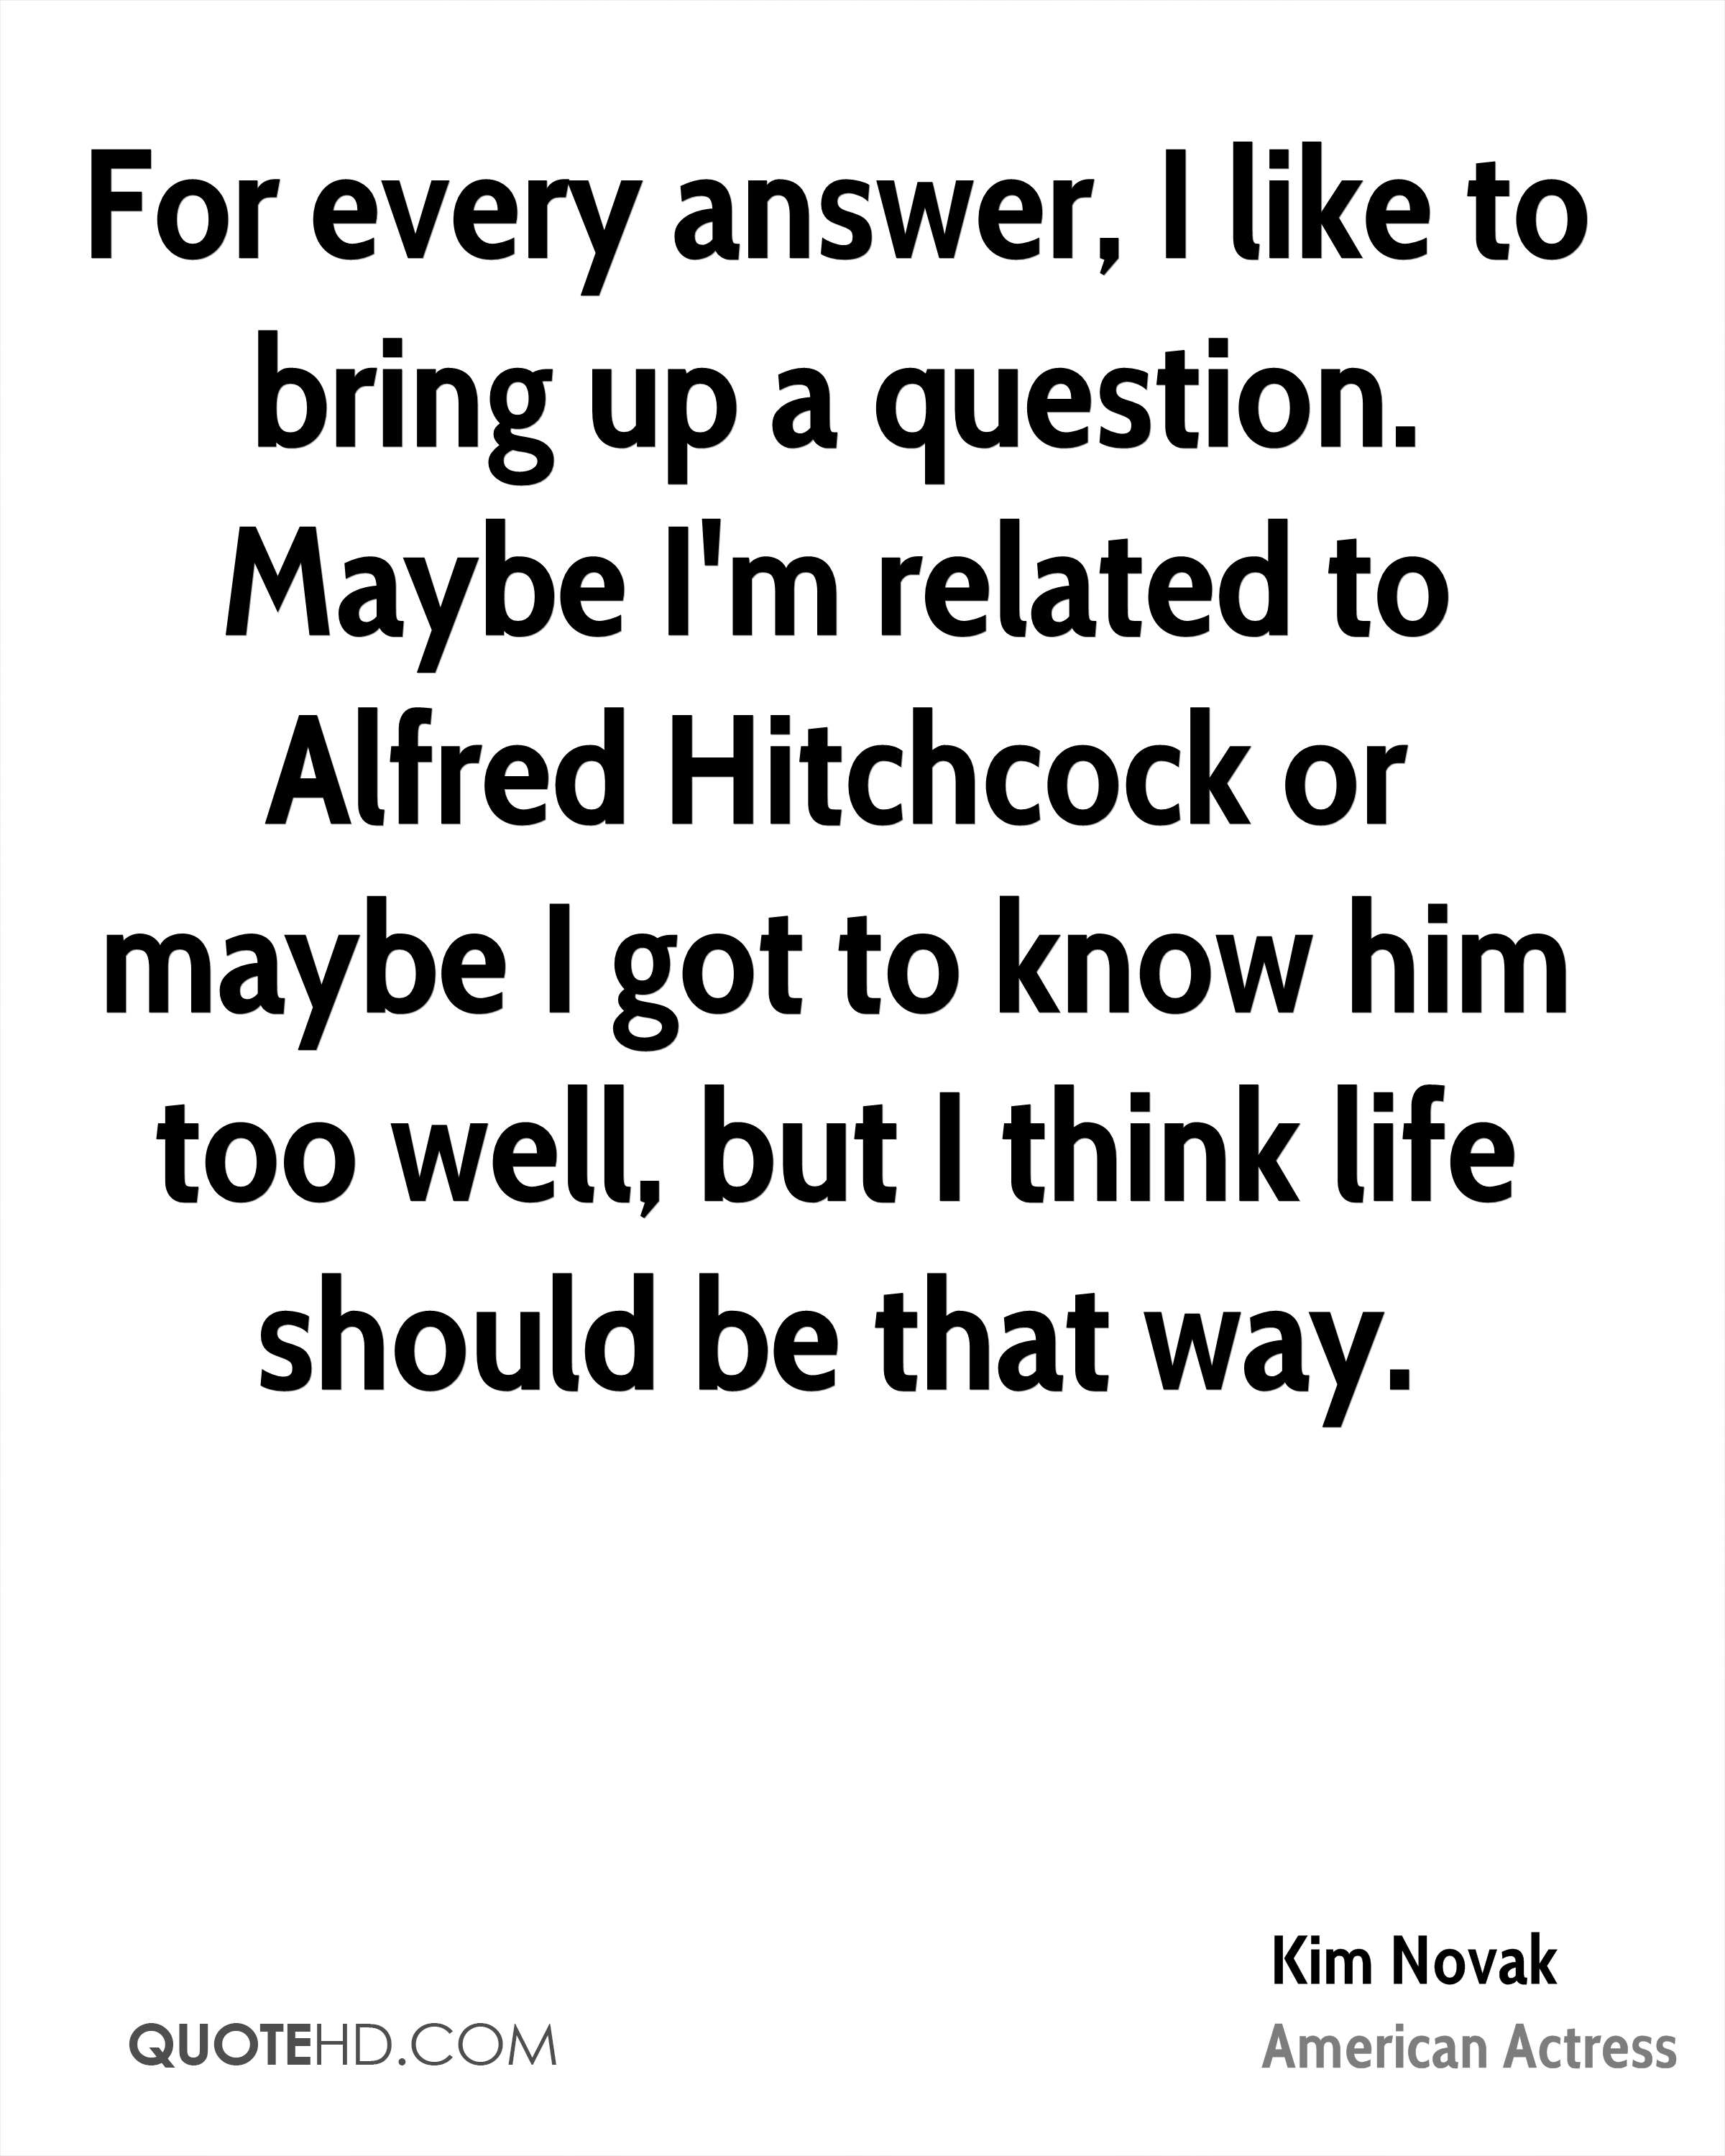 For every answer, I like to bring up a question. Maybe I'm related to Alfred Hitchcock or maybe I got to know him too well, but I think life should be that way.